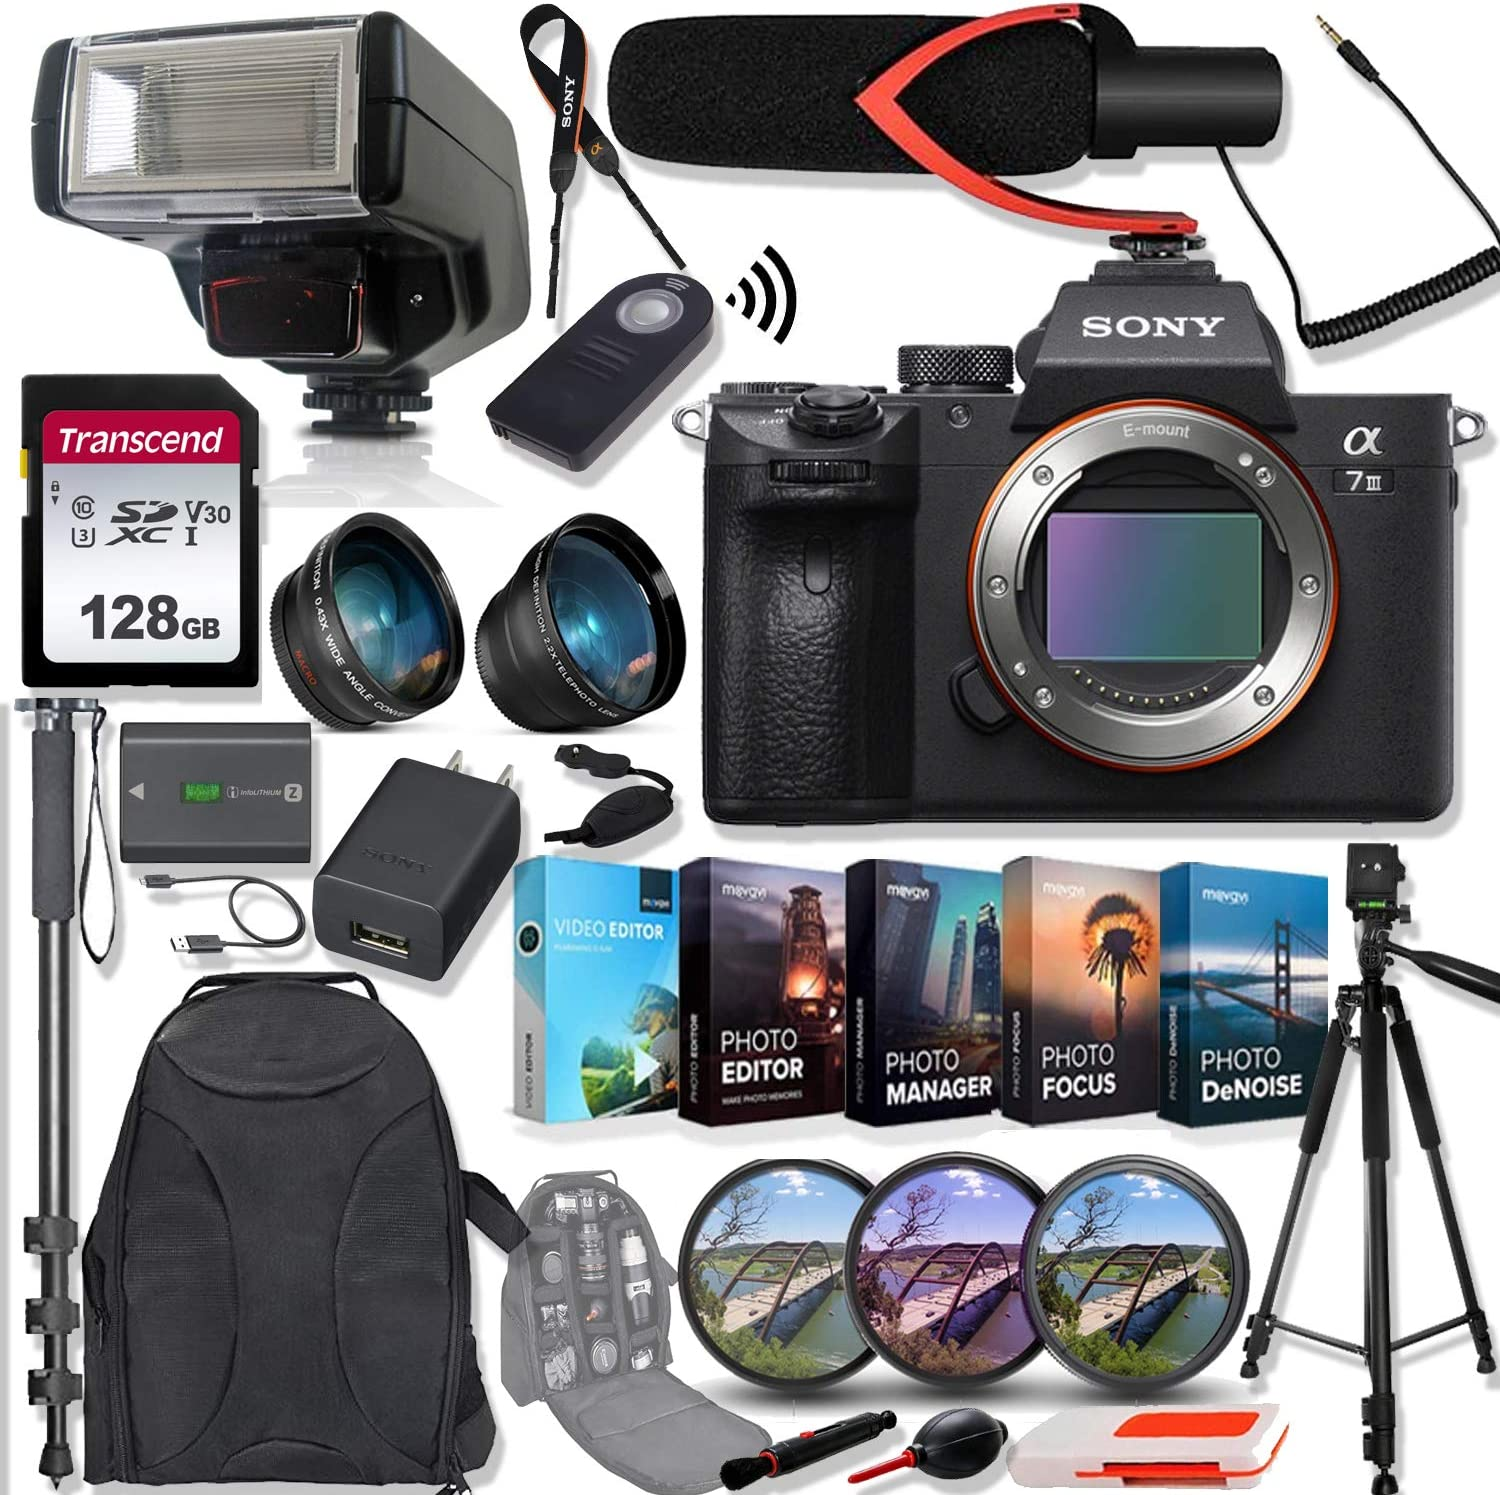 Sony Alpha a7 III Mirrorless Digital Camera (Body Only) ILCE7M3/B Bundle with Telephoto and Wide-Angle Lens Set, 128GB Memory Card, Microphone, TTL Flash, Camera Bag and Accessories